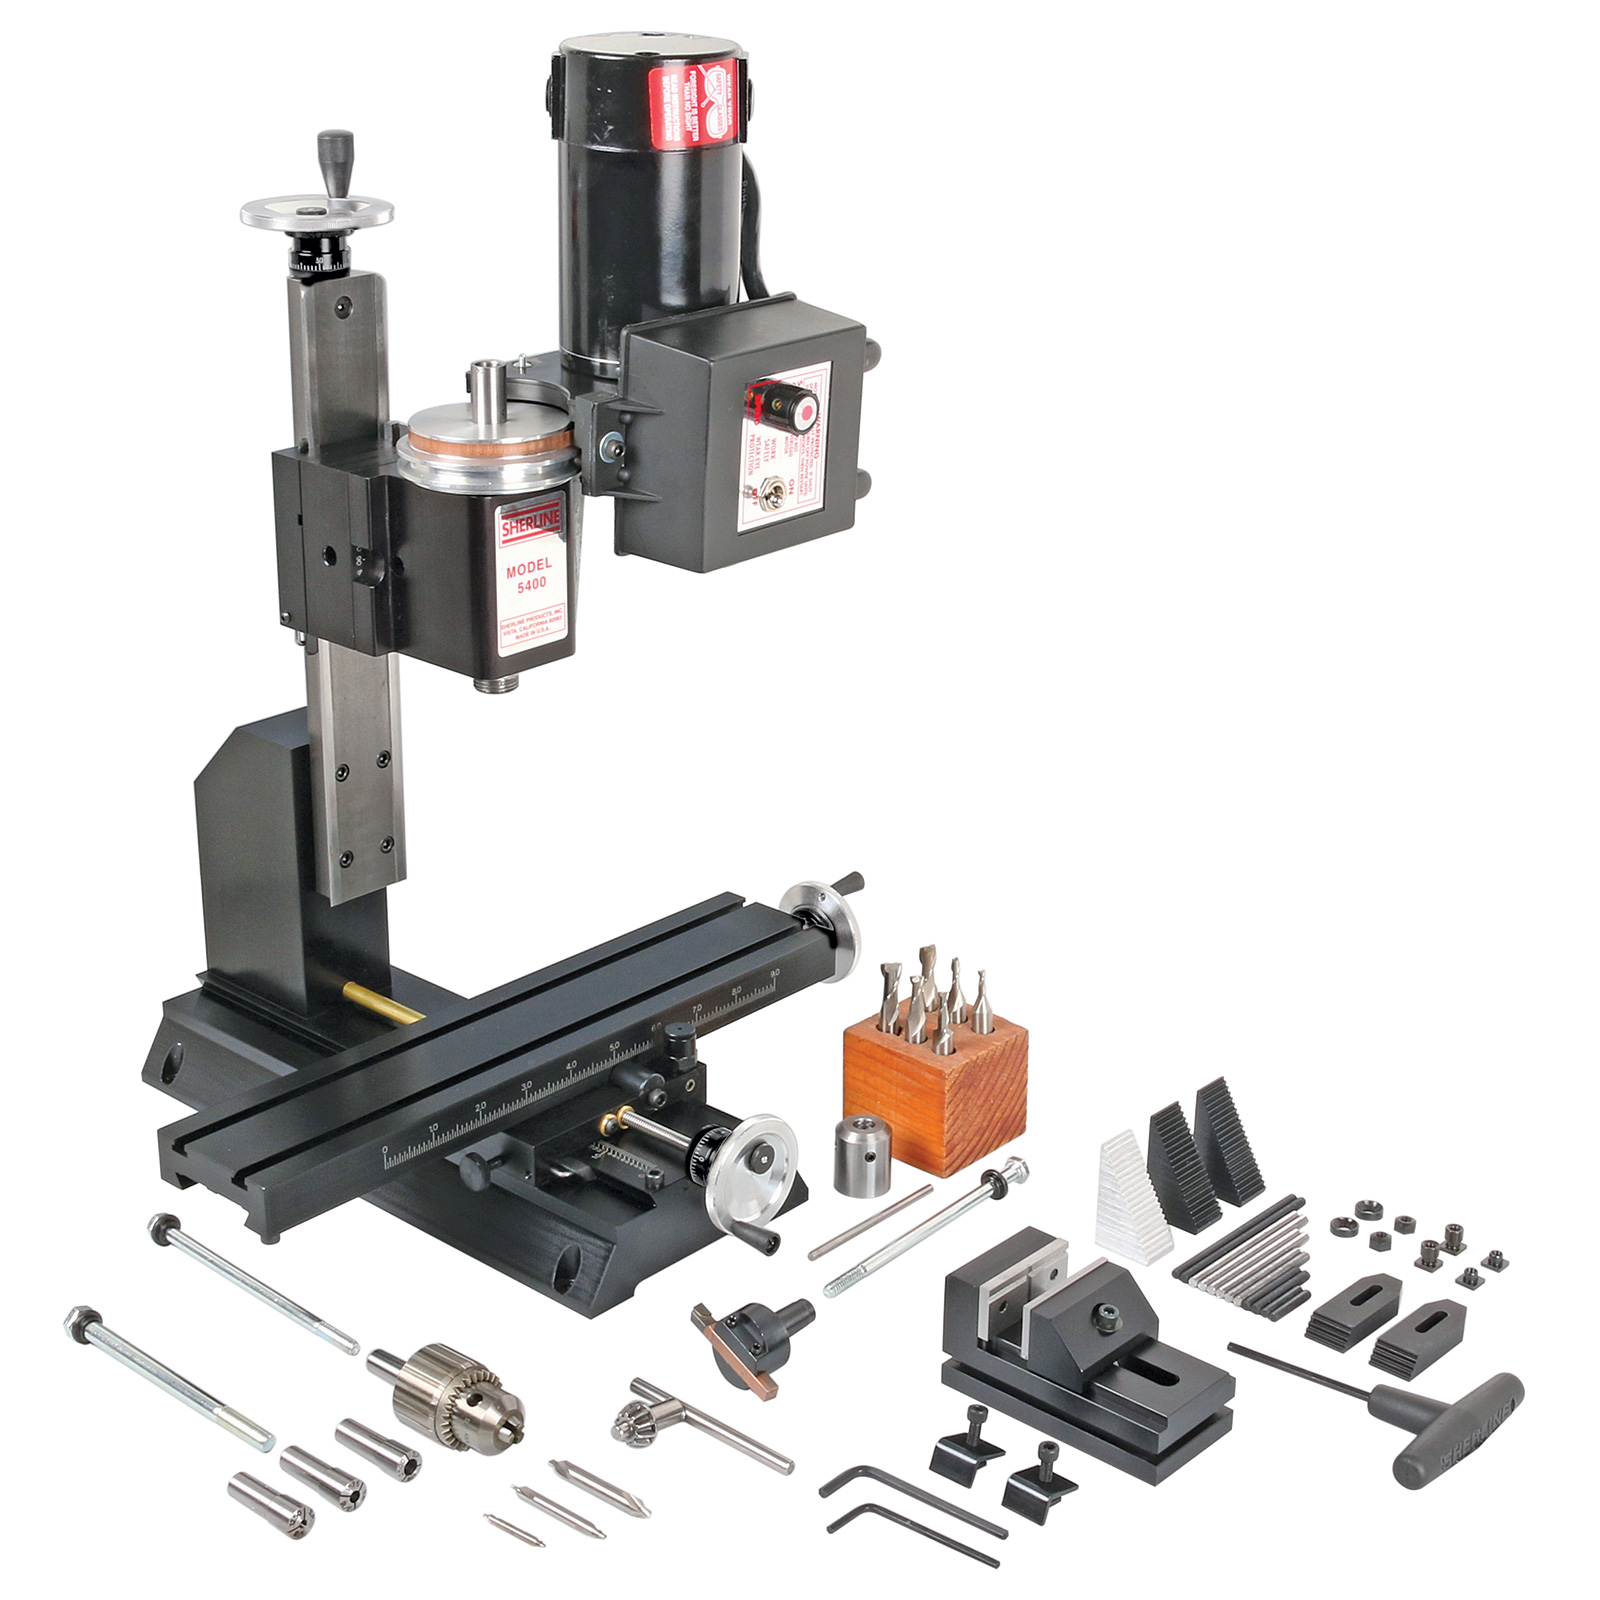 Awe Inspiring Sherline 5400 Series Deluxe Vertical Milling Machine Package Pabps2019 Chair Design Images Pabps2019Com